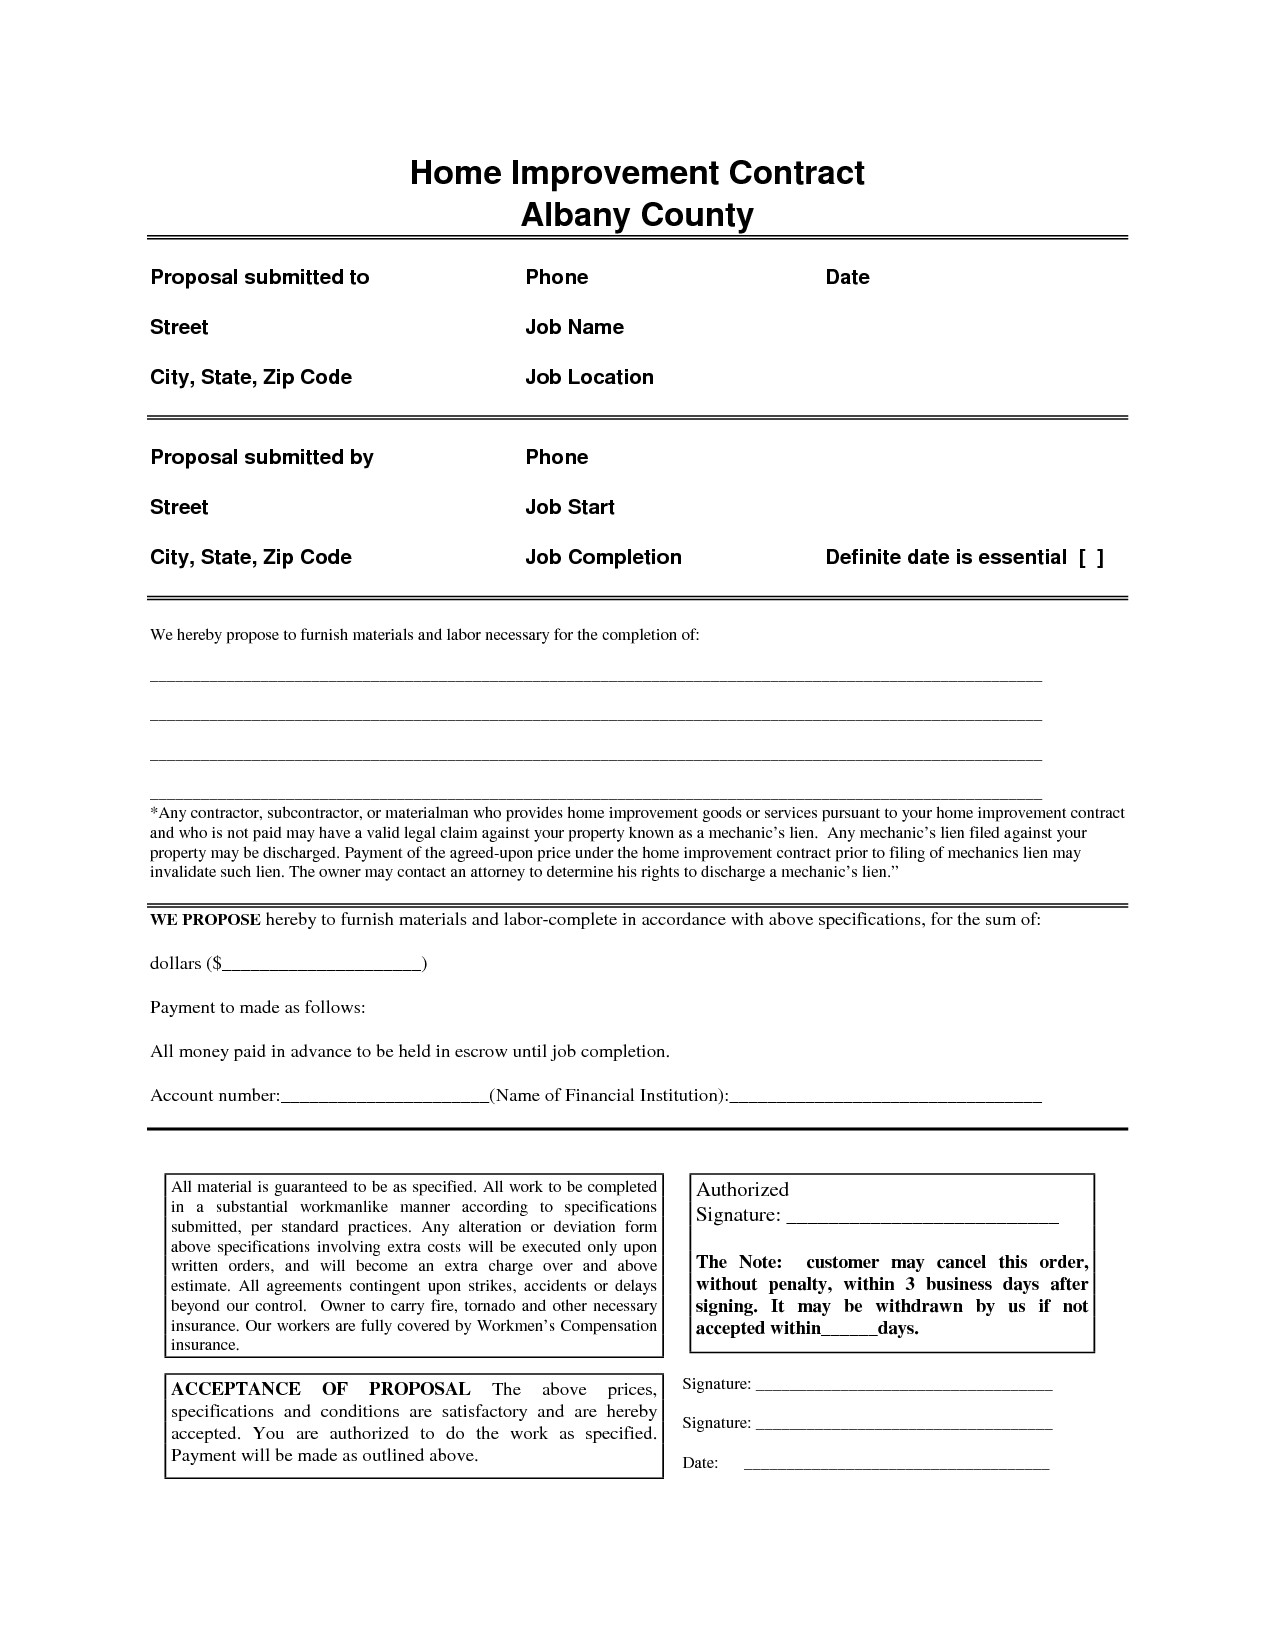 Home Improvement Contract Template Home Improvement Contract Free Printable Documents